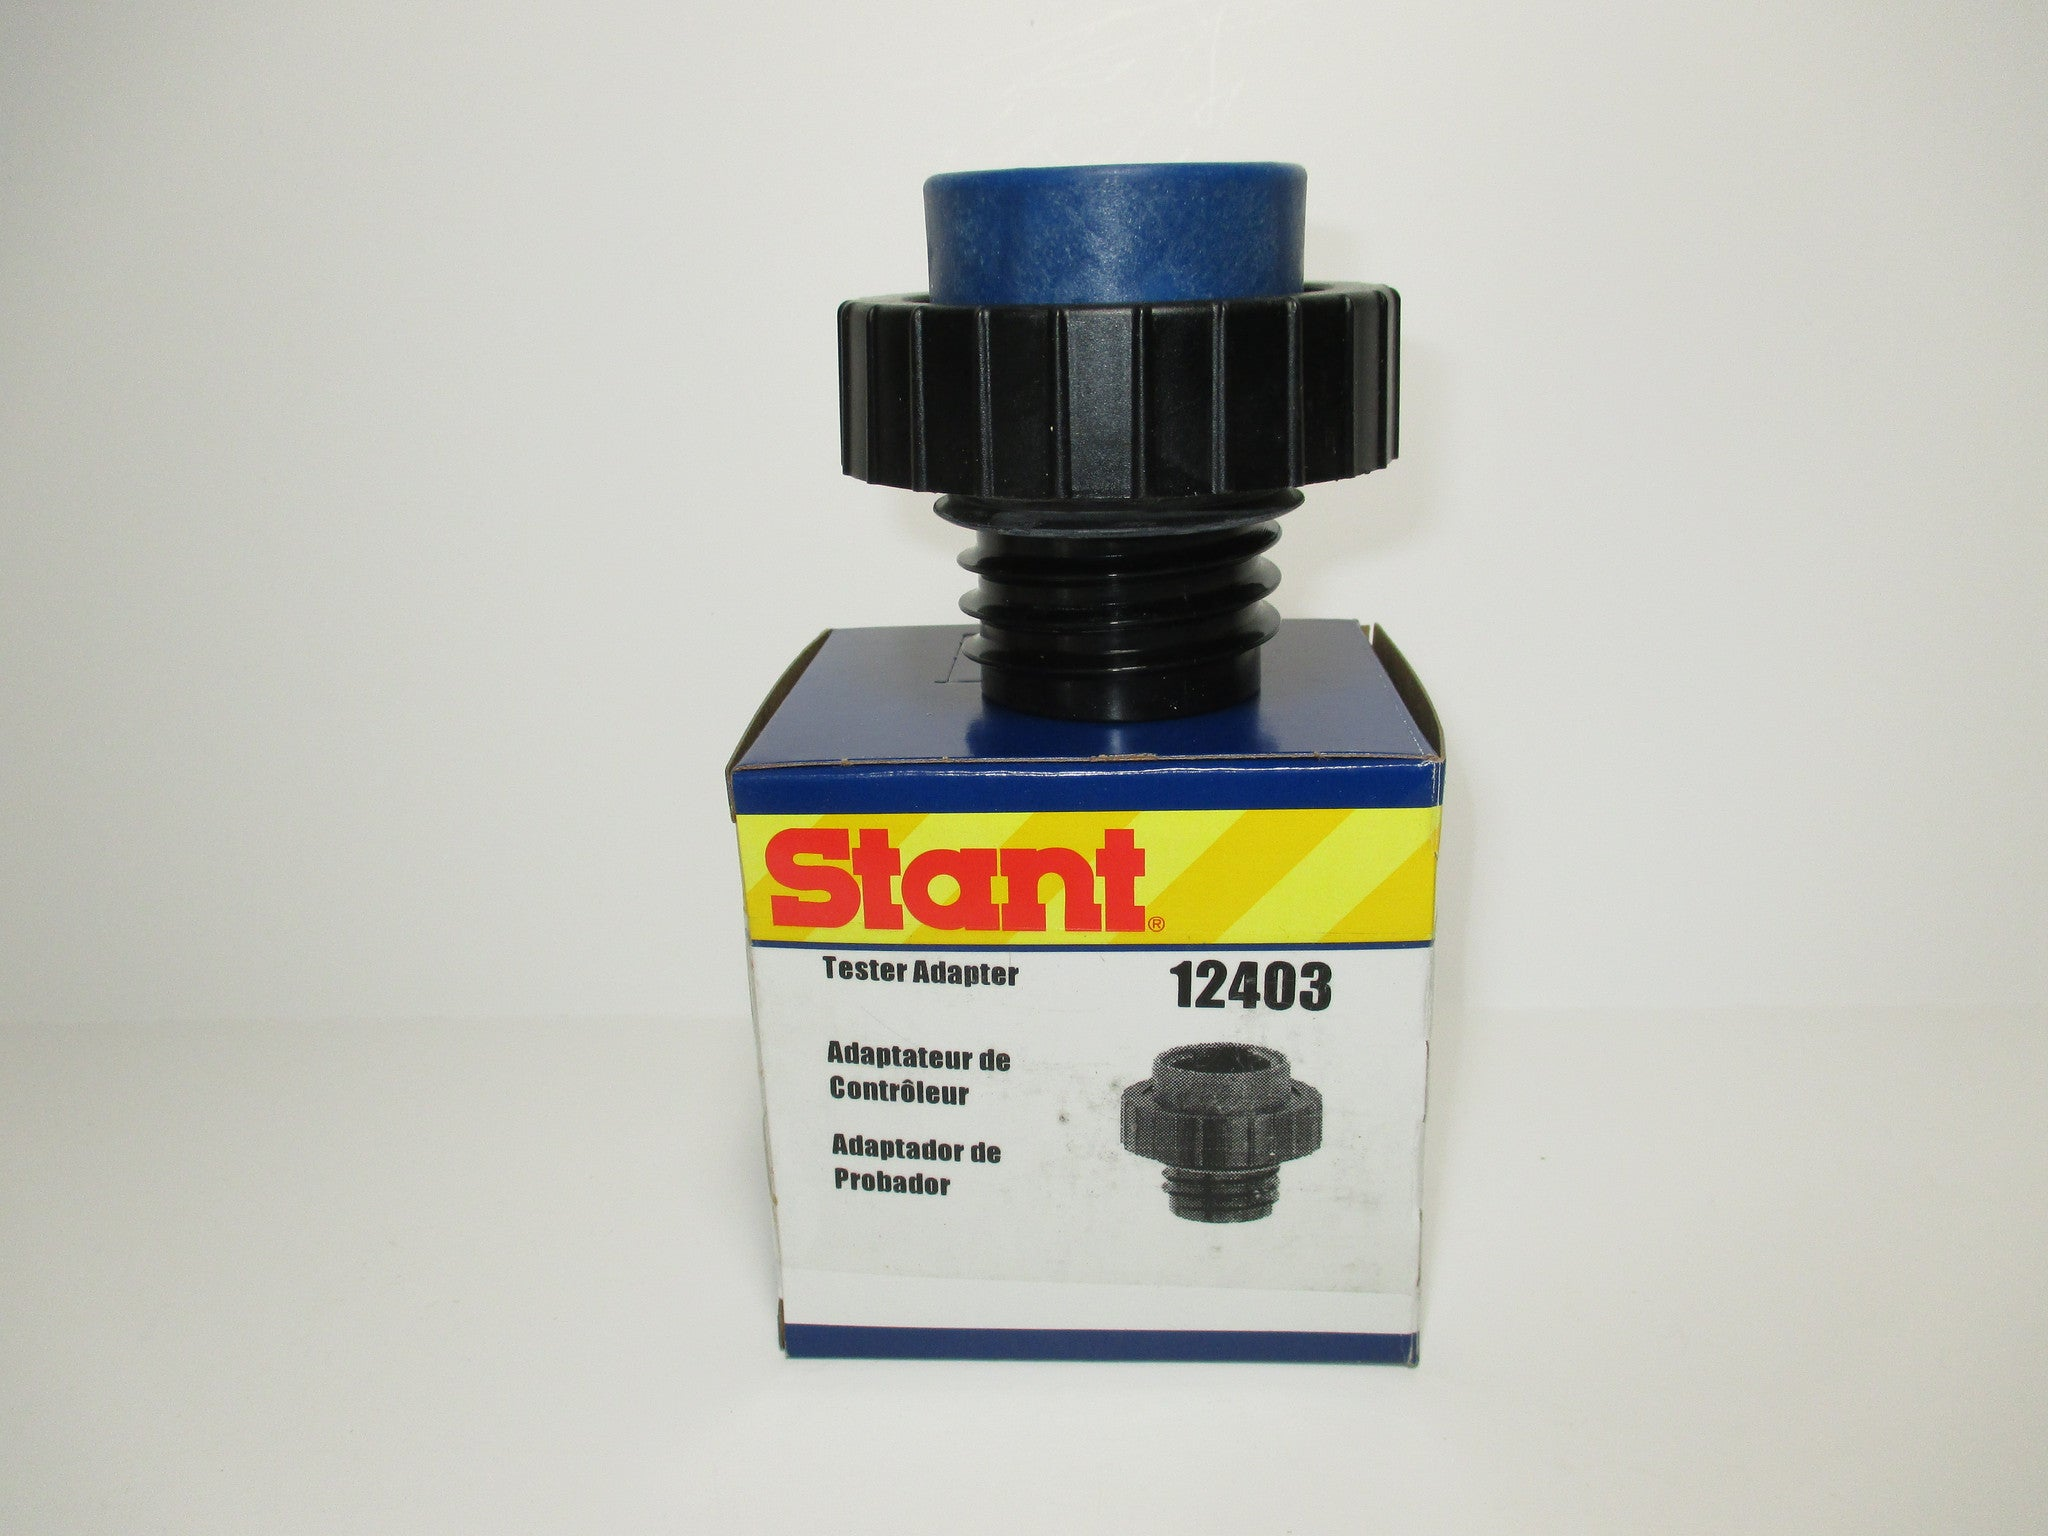 Stant 12403 Fuel Cap Tester Adapter